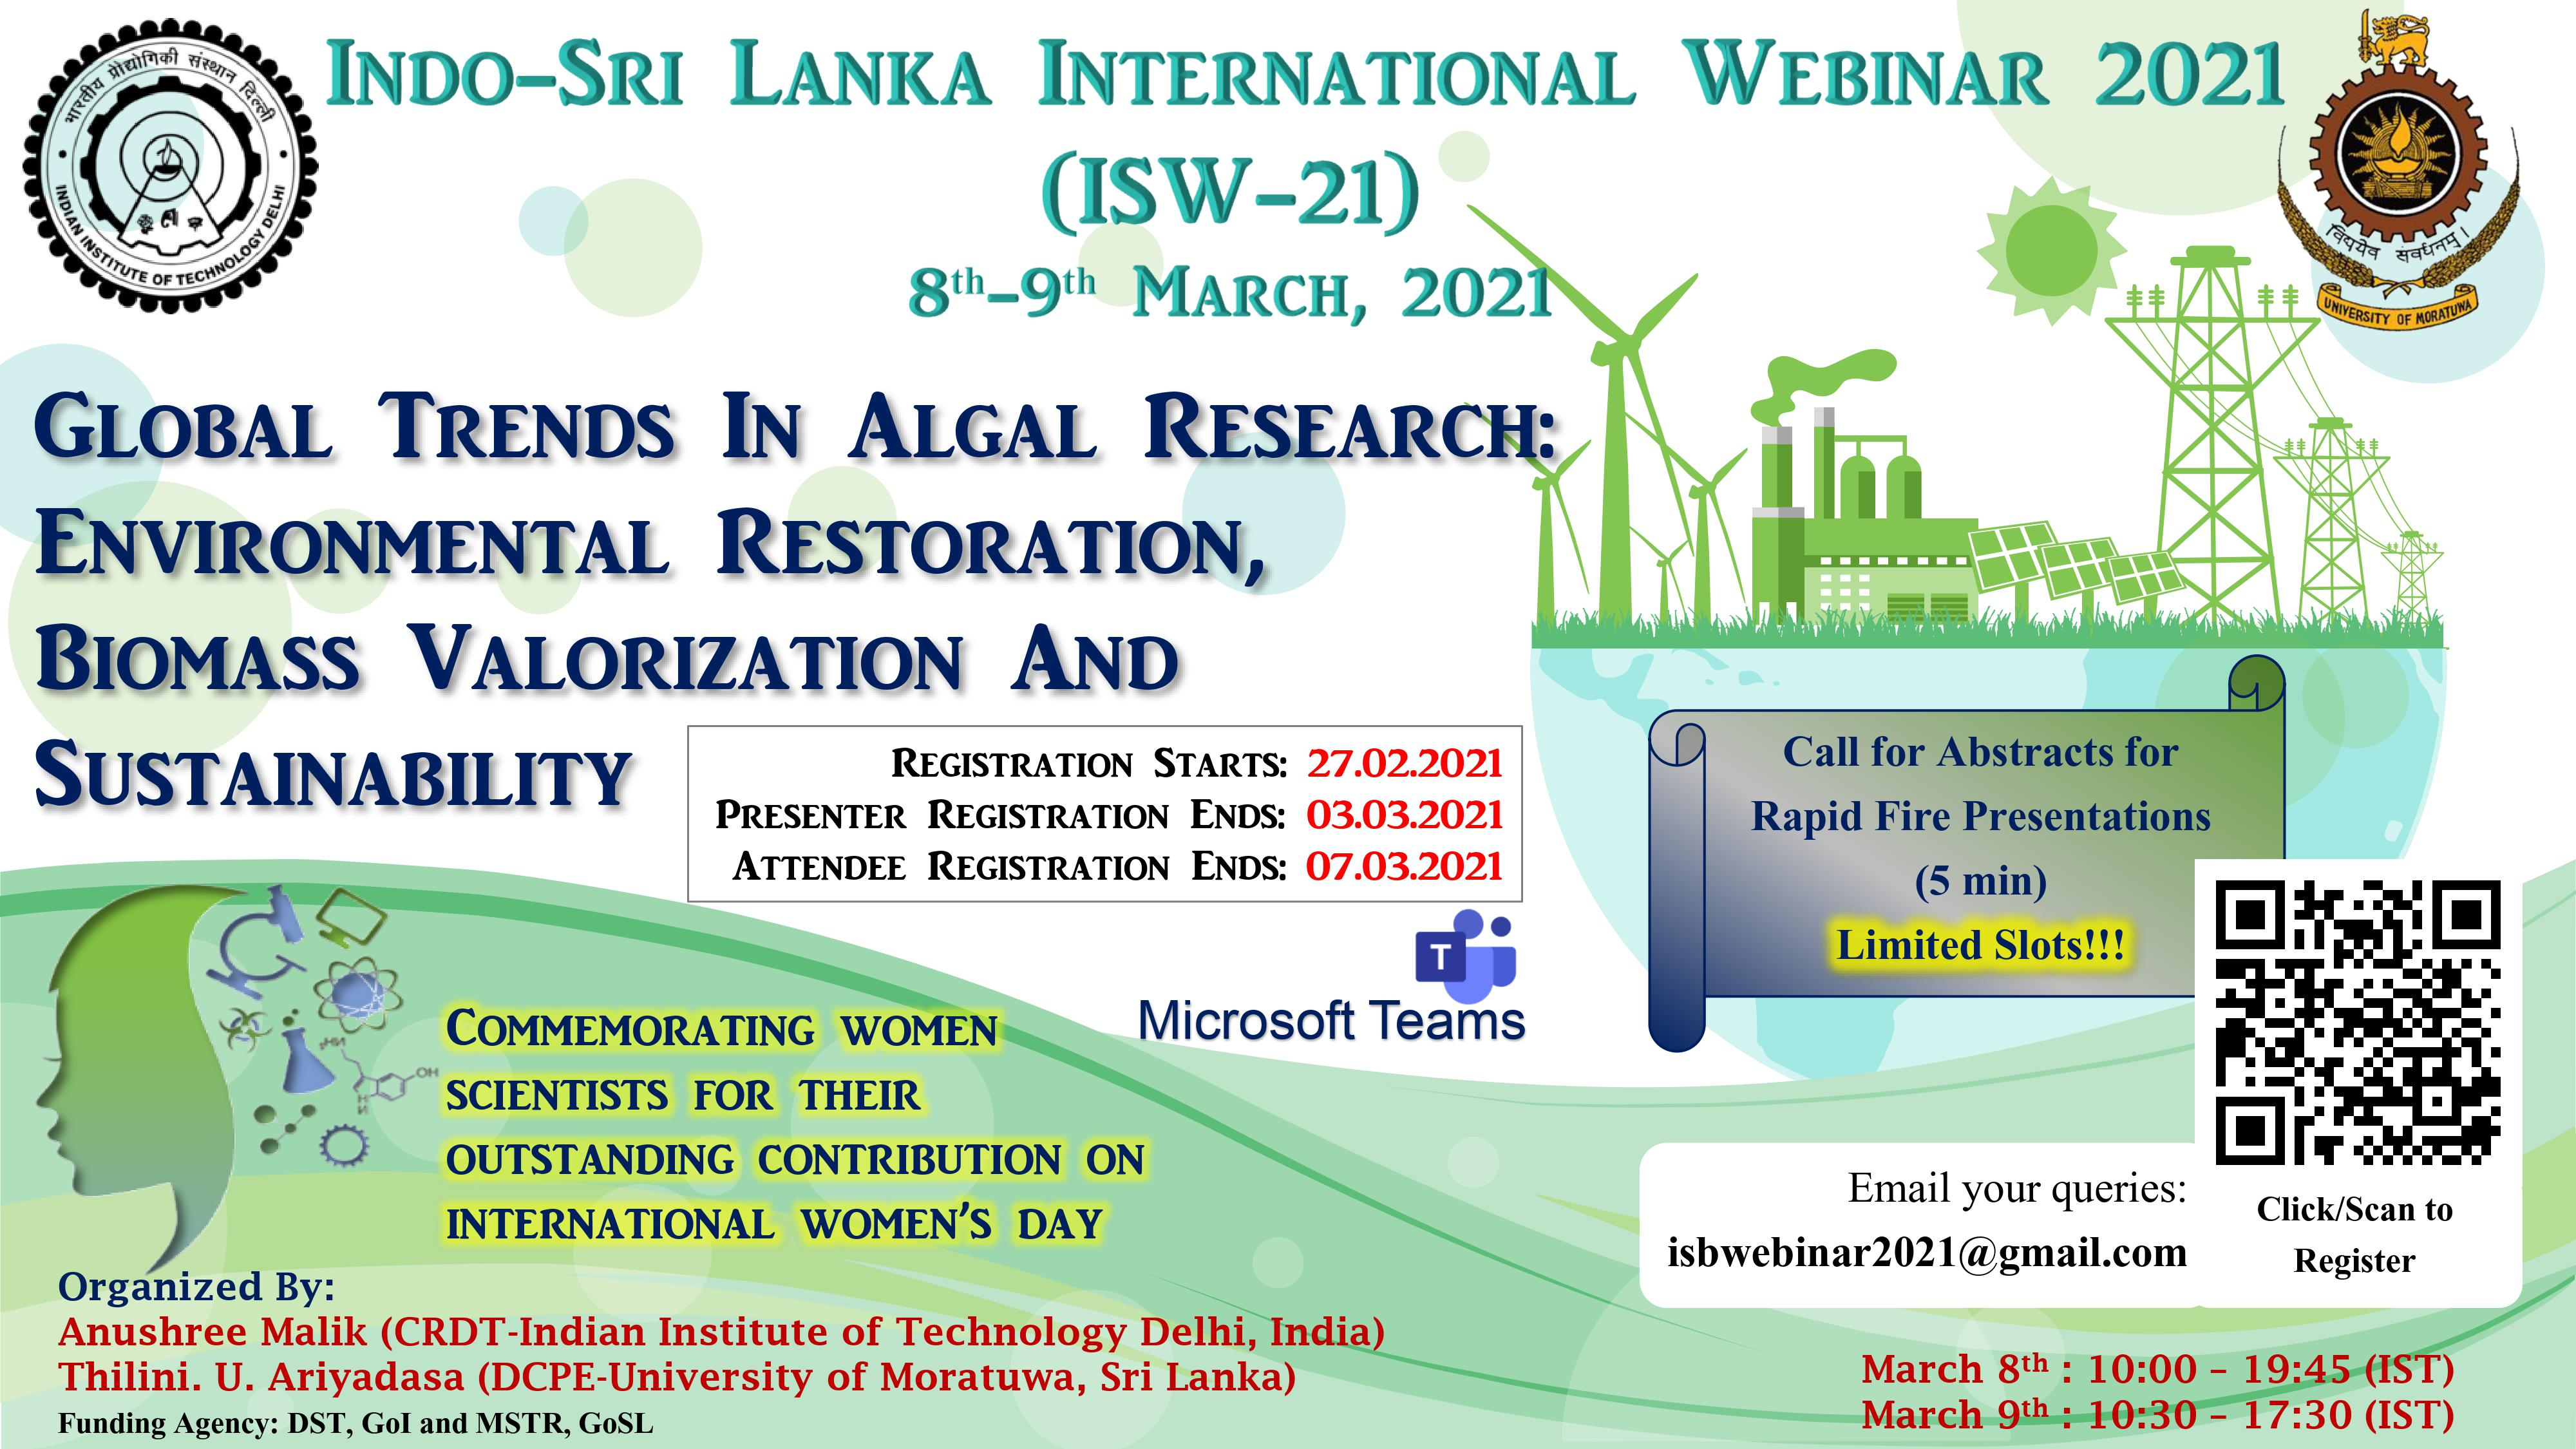 Indo-Sri Lanka International Webinar, 2021 (ISW-21): Global trends in Algal Research: Environmental Restoration, Biomass Valorization and Sustainability